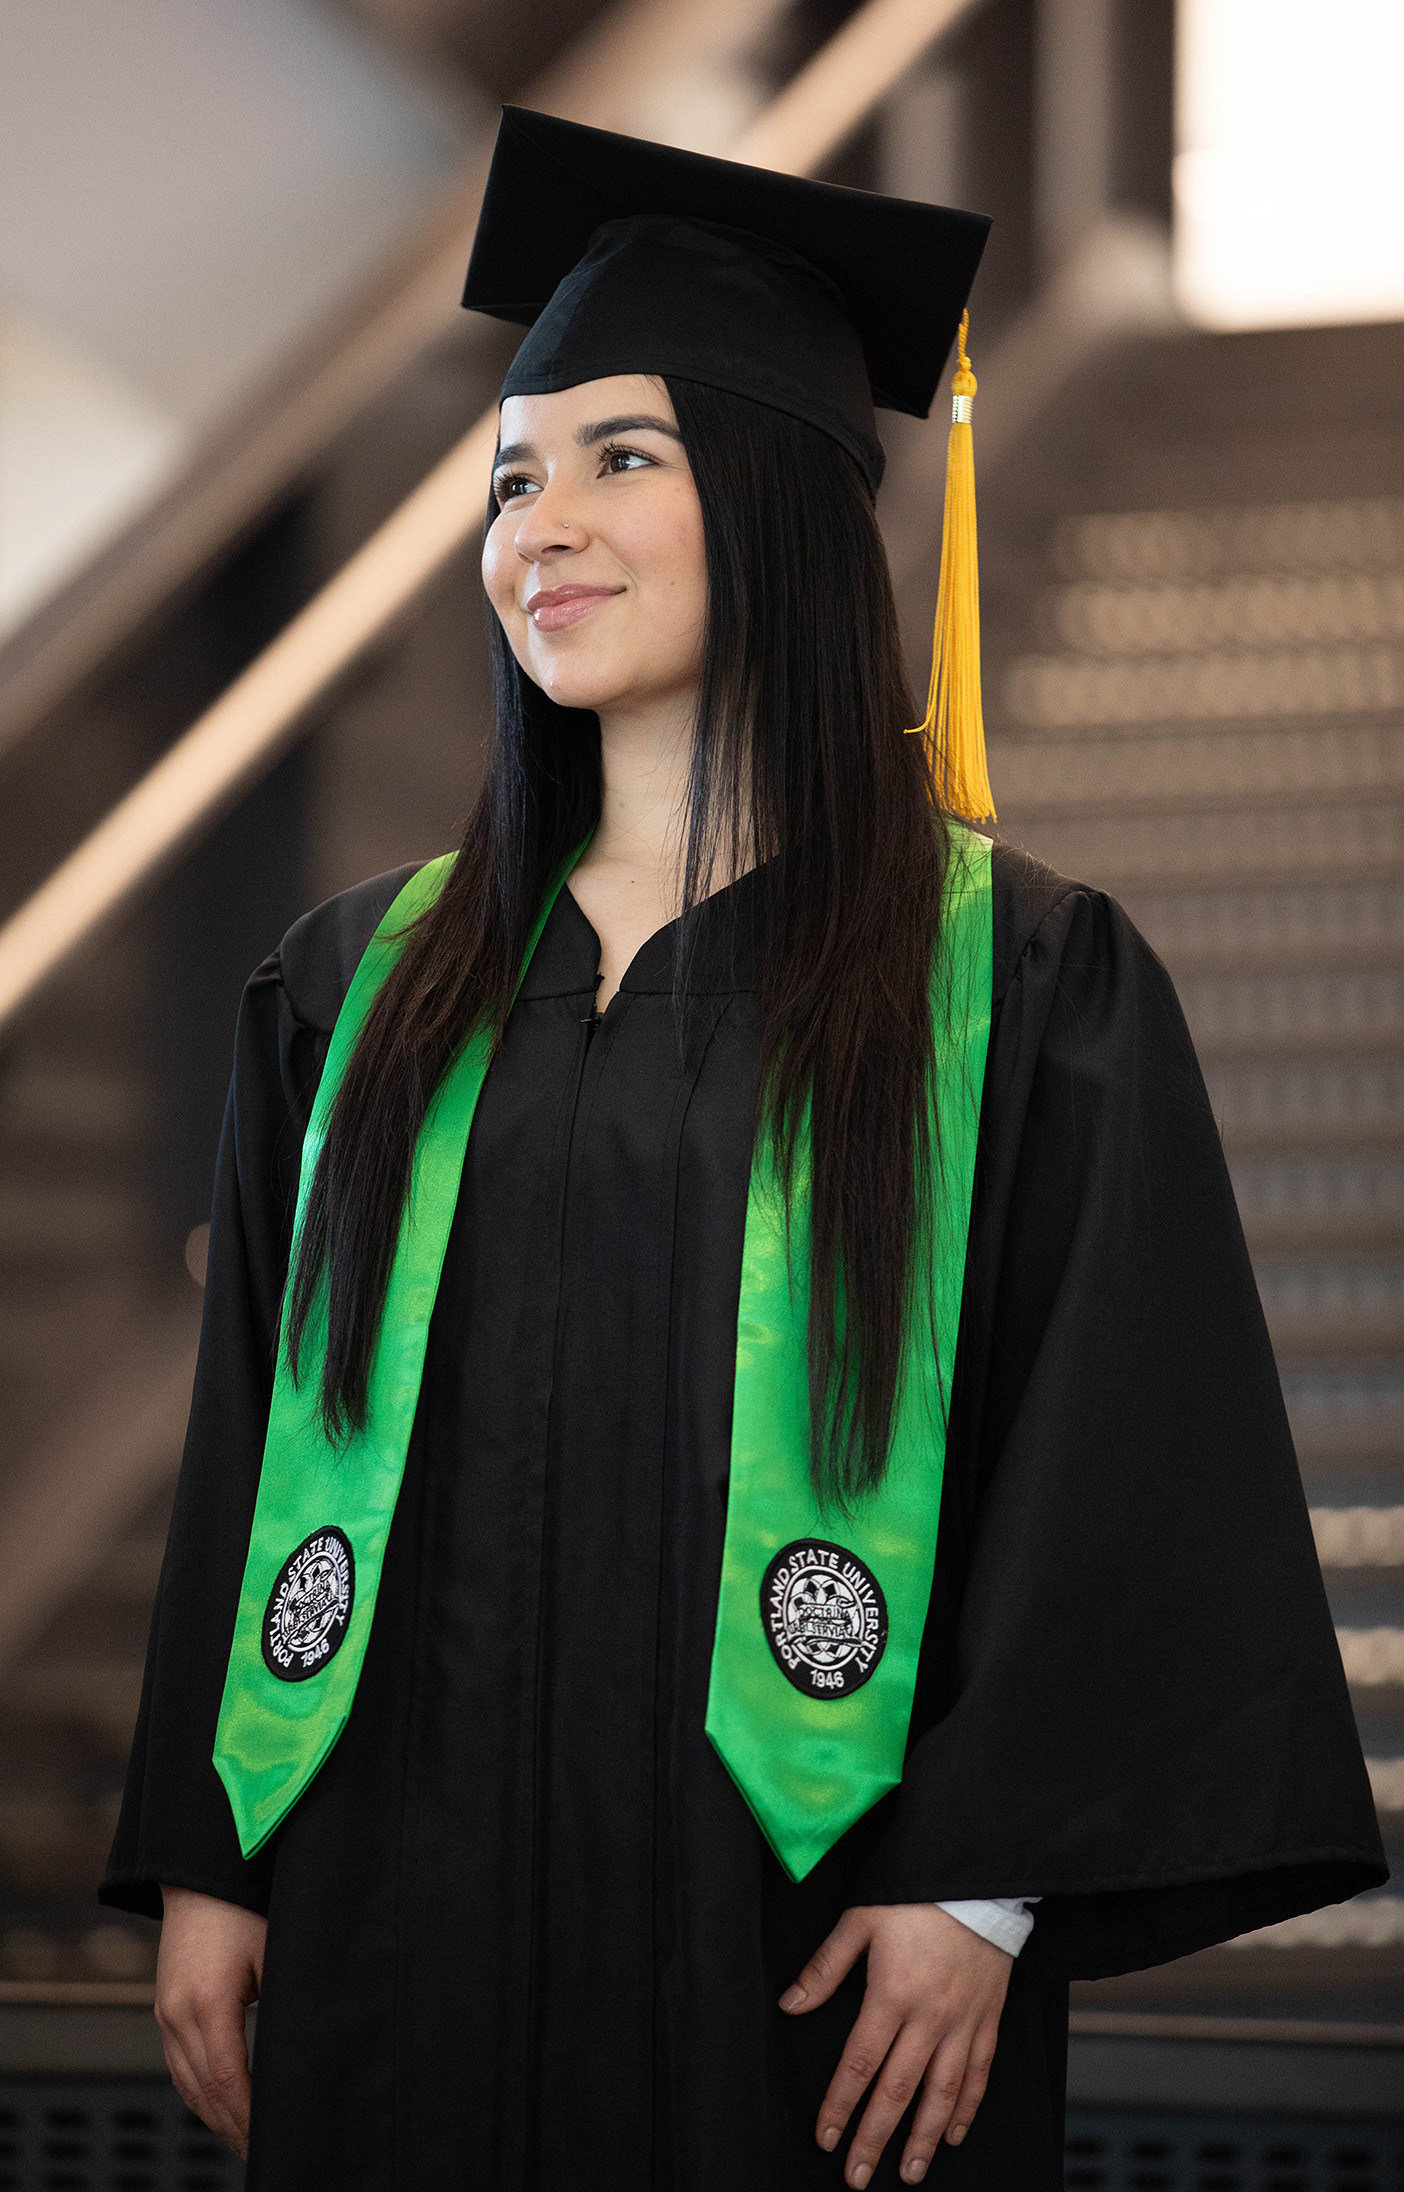 Green stole of gratitude with Portland State commencement insignia